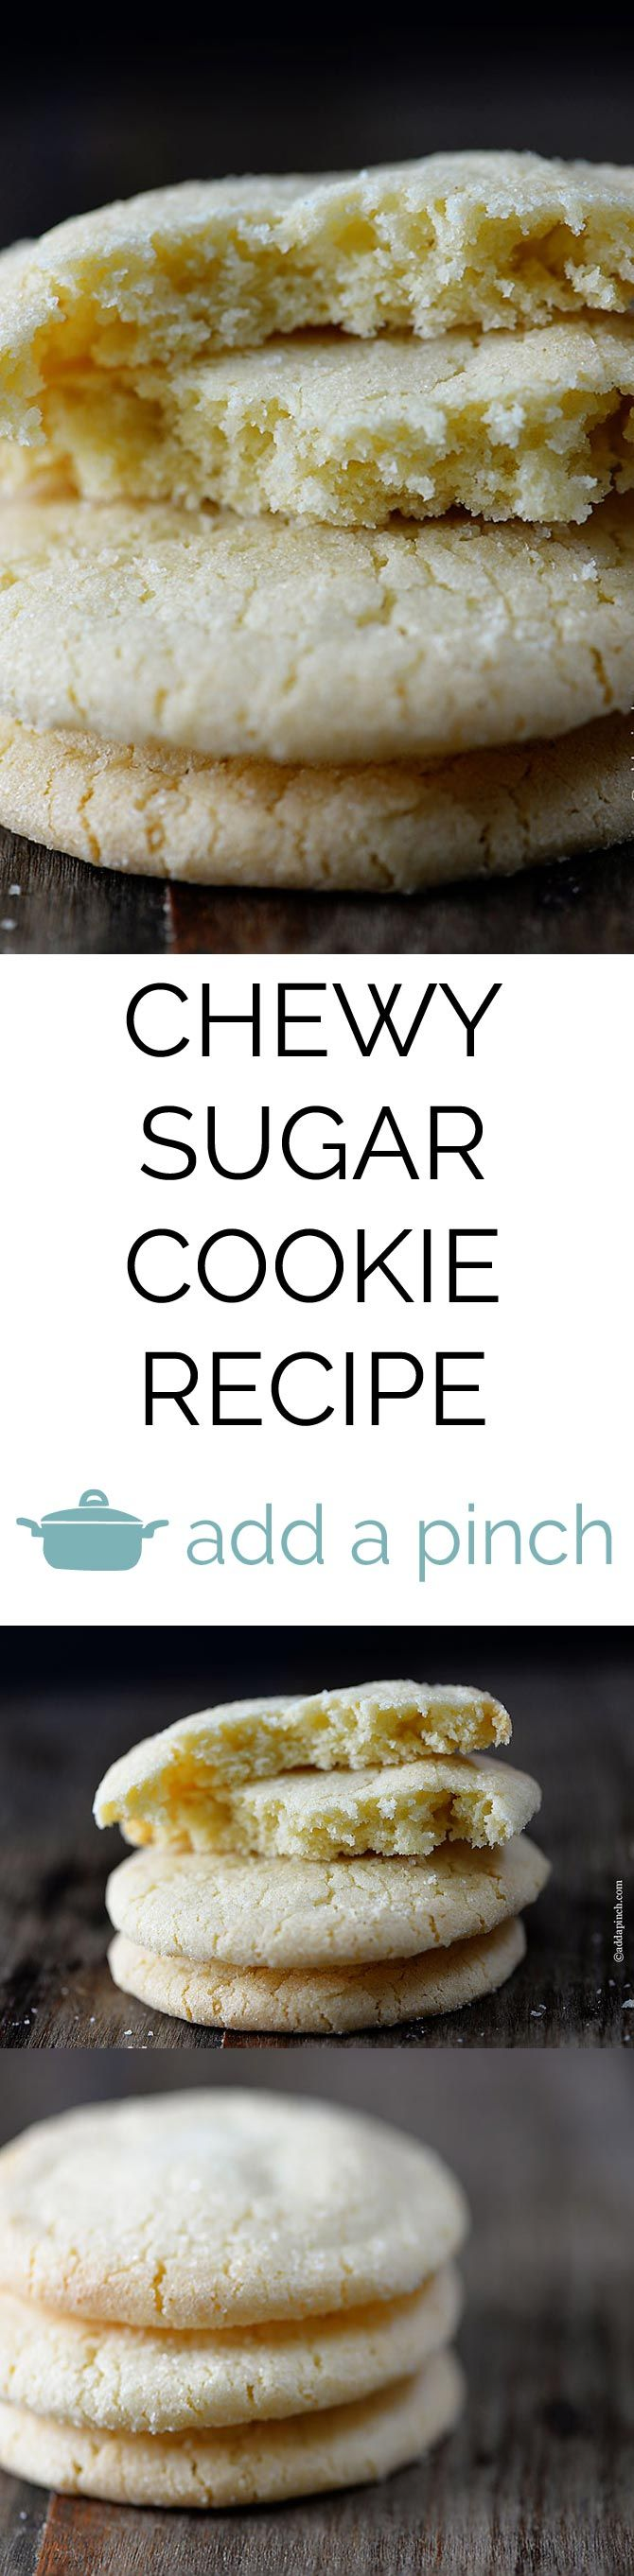 Sugar Cookie Recipe from addapinch.com